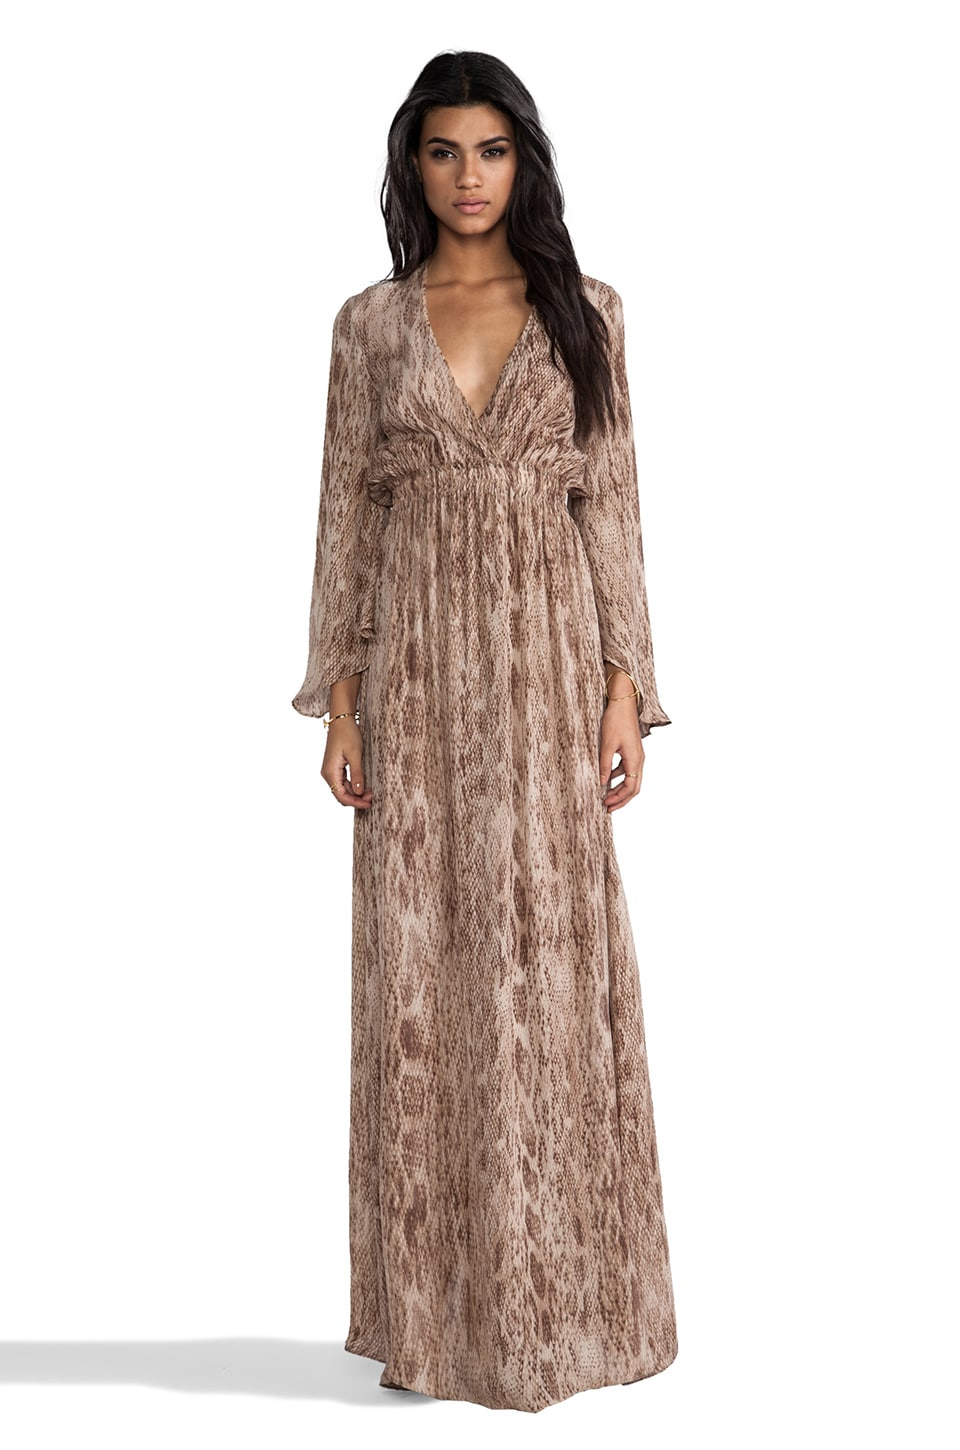 LoveShackFancy Love Shack Fancy Long Sleeve Maxi Dress in Tan Watersnake